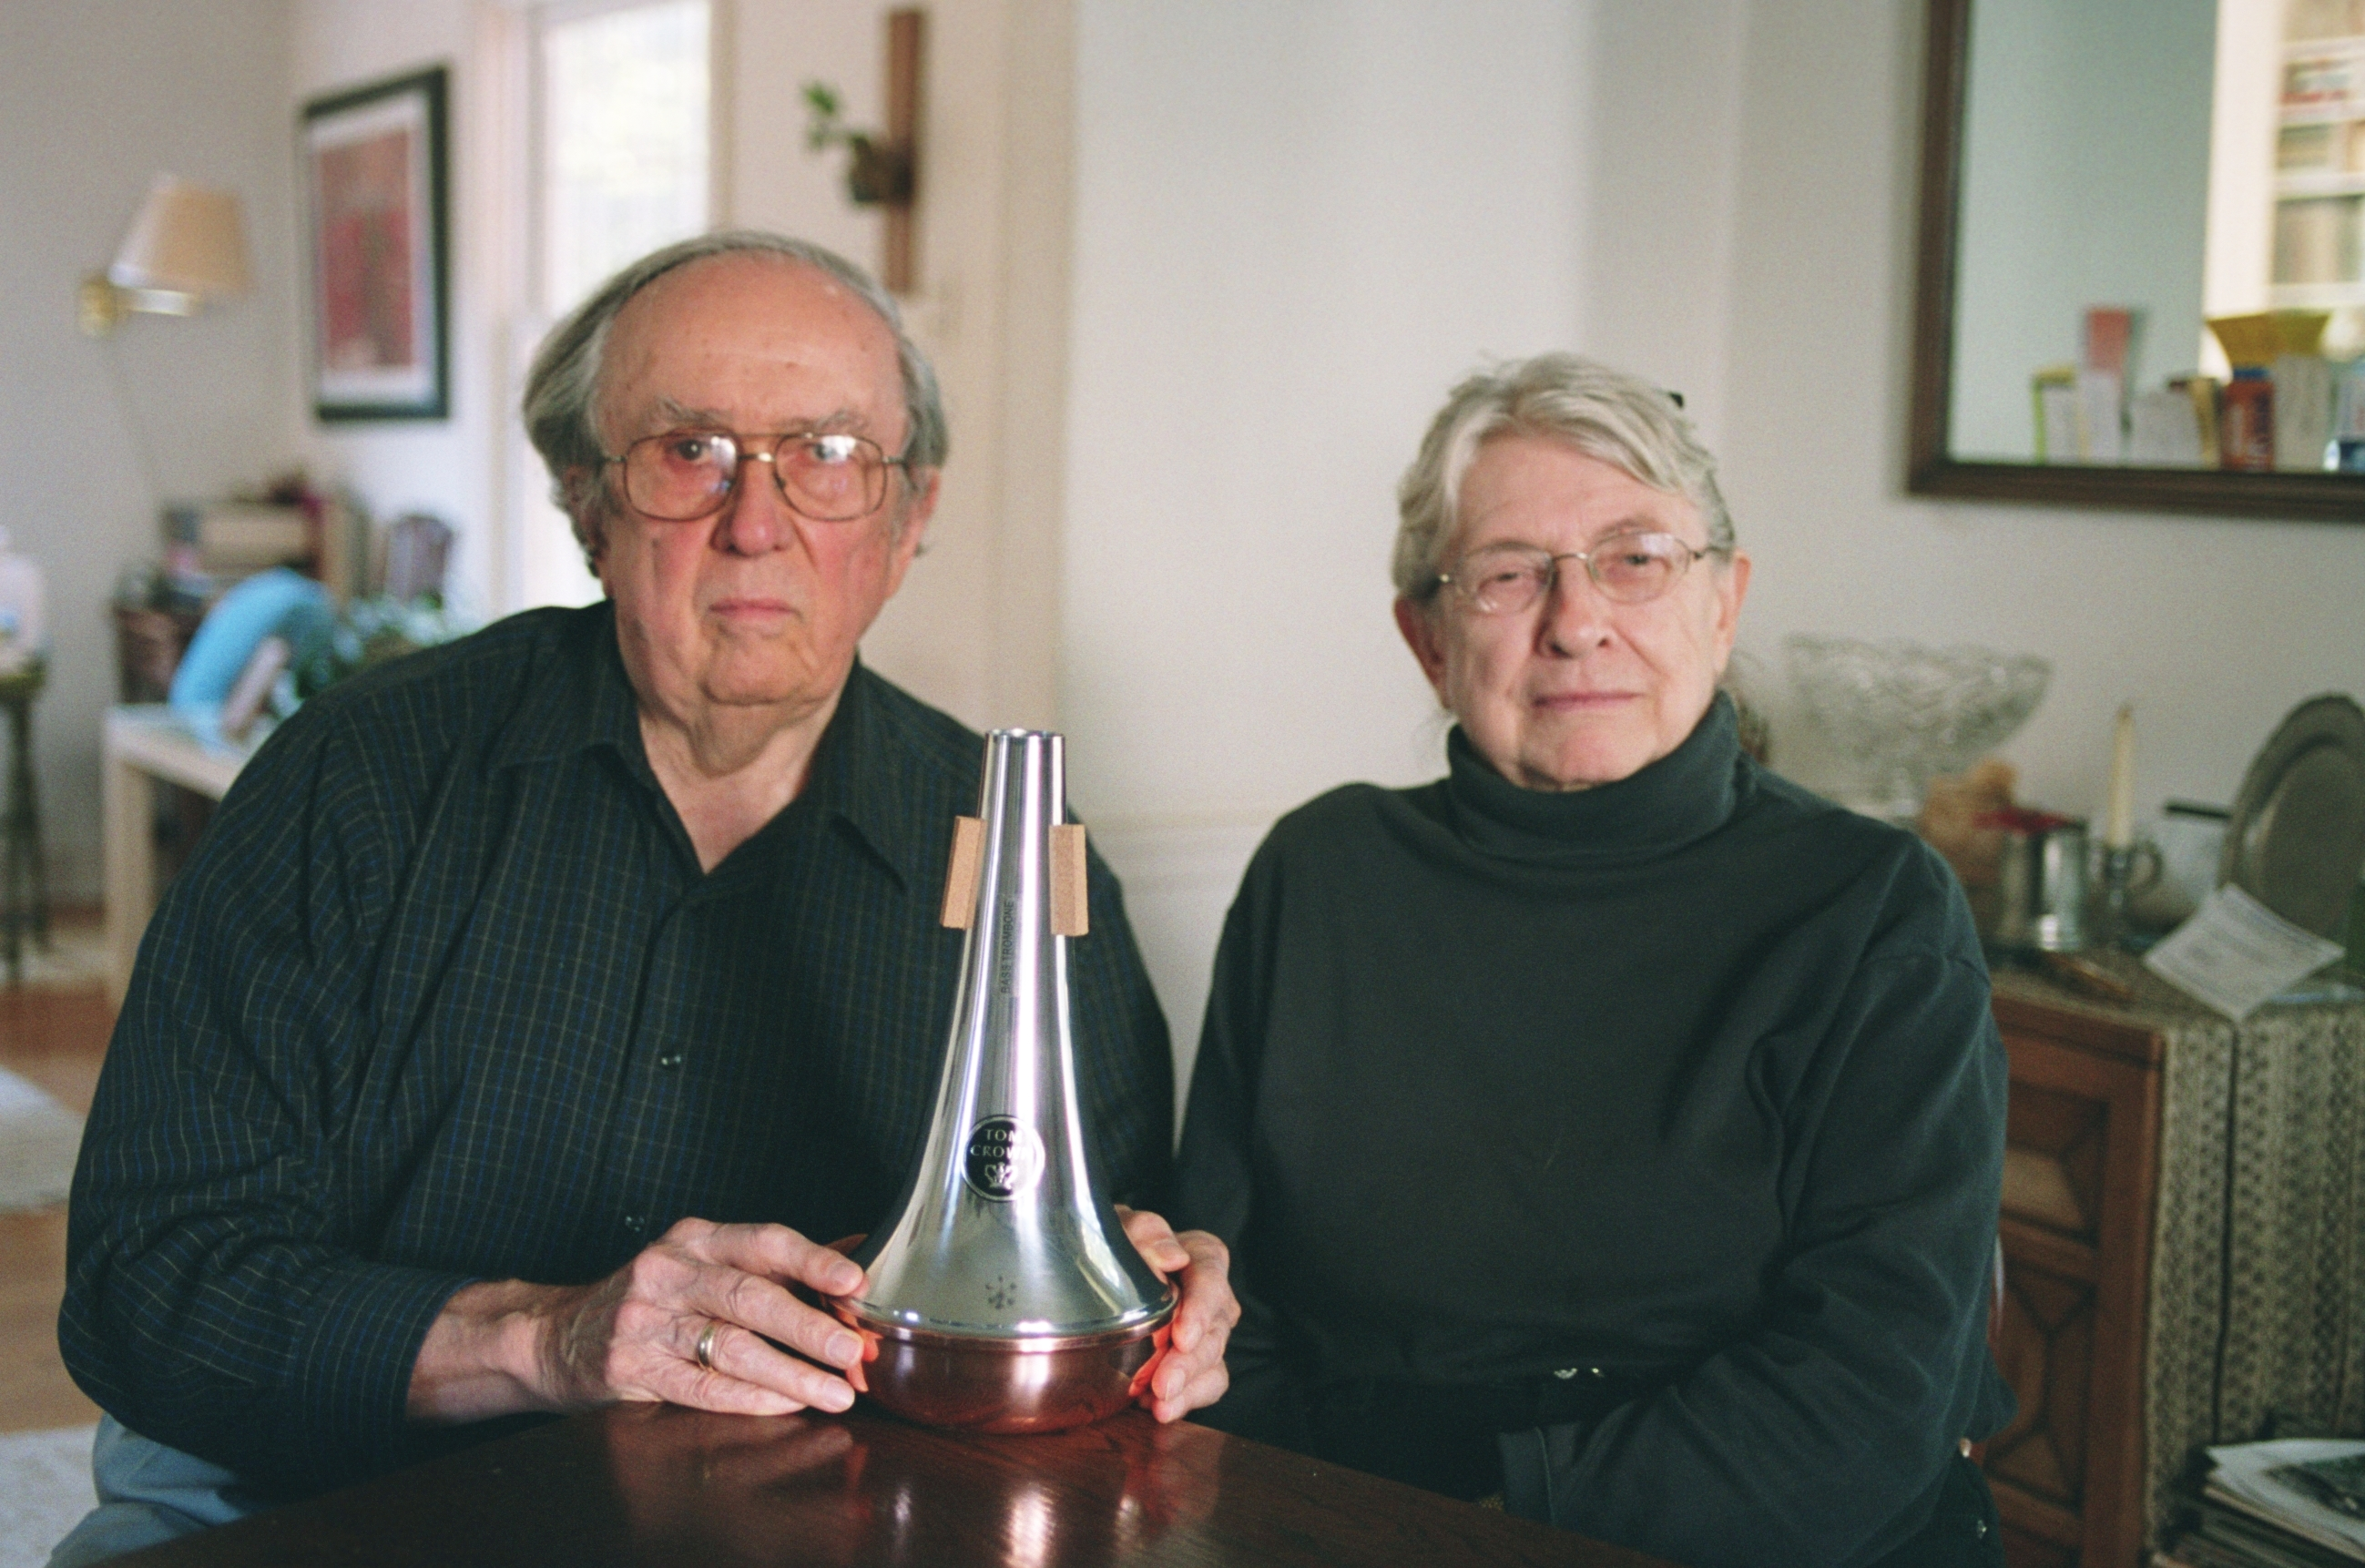 thomas crown with wife donna